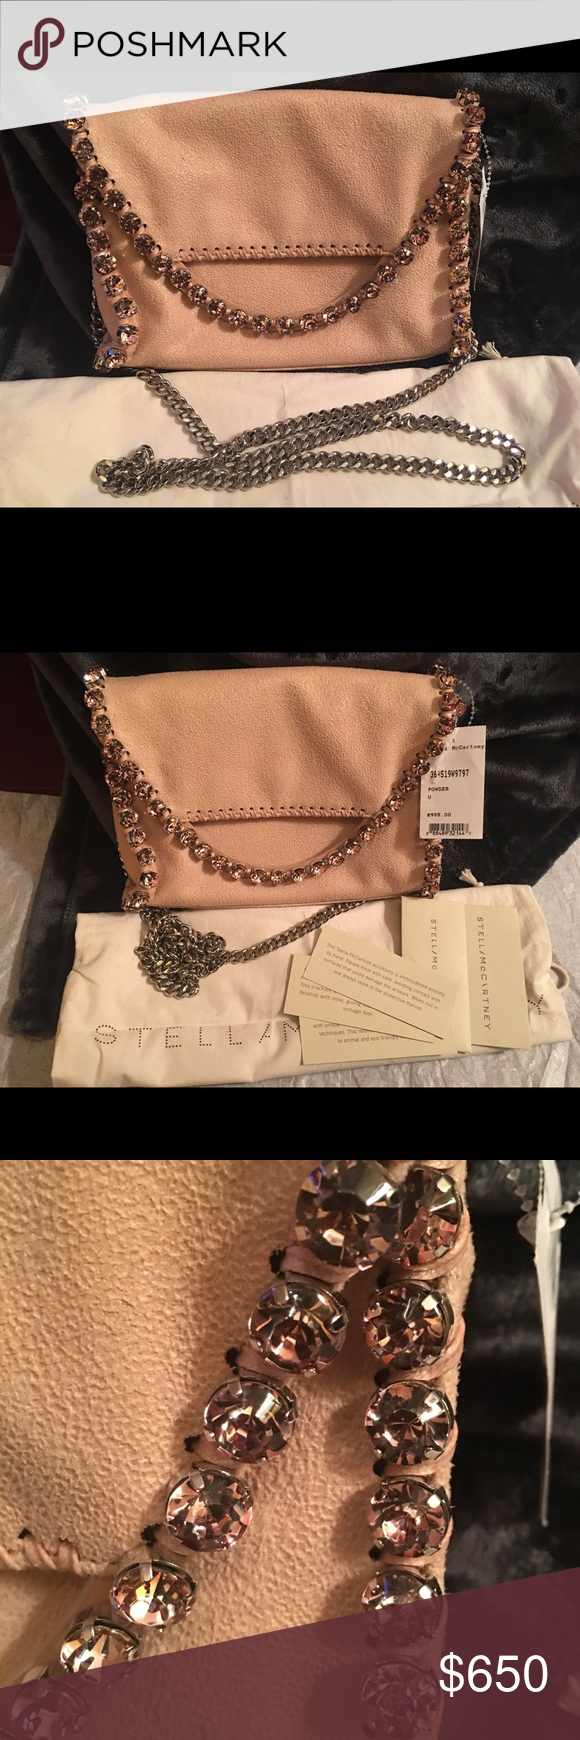 Mini Falabella in Powder Authentic Stella McCartney Shaggy Deer Rhinestone Mini Falabella.  Comes with dust bag and cards. Stella McCartney Bags Mini Bags